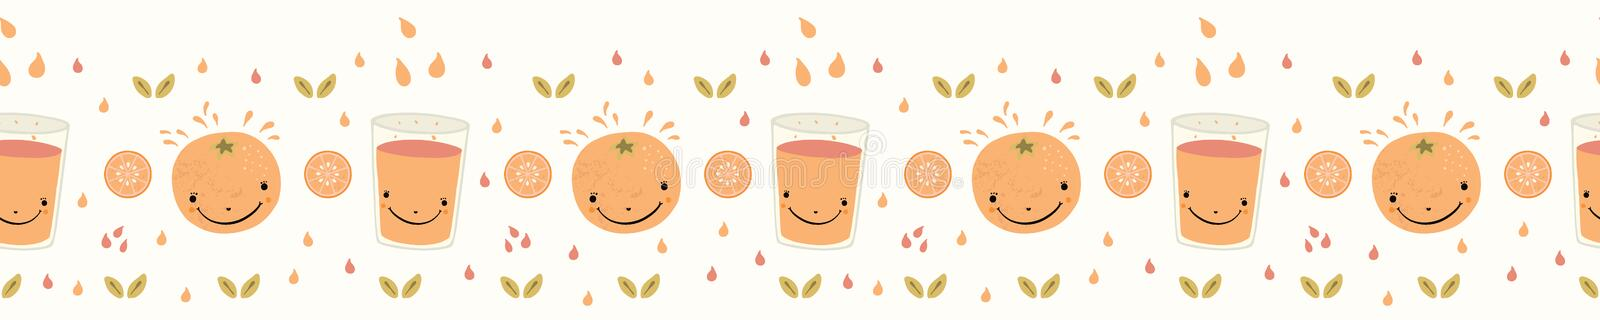 Cute whole orange citrus fruit cartoon with glass of juice royalty free illustration